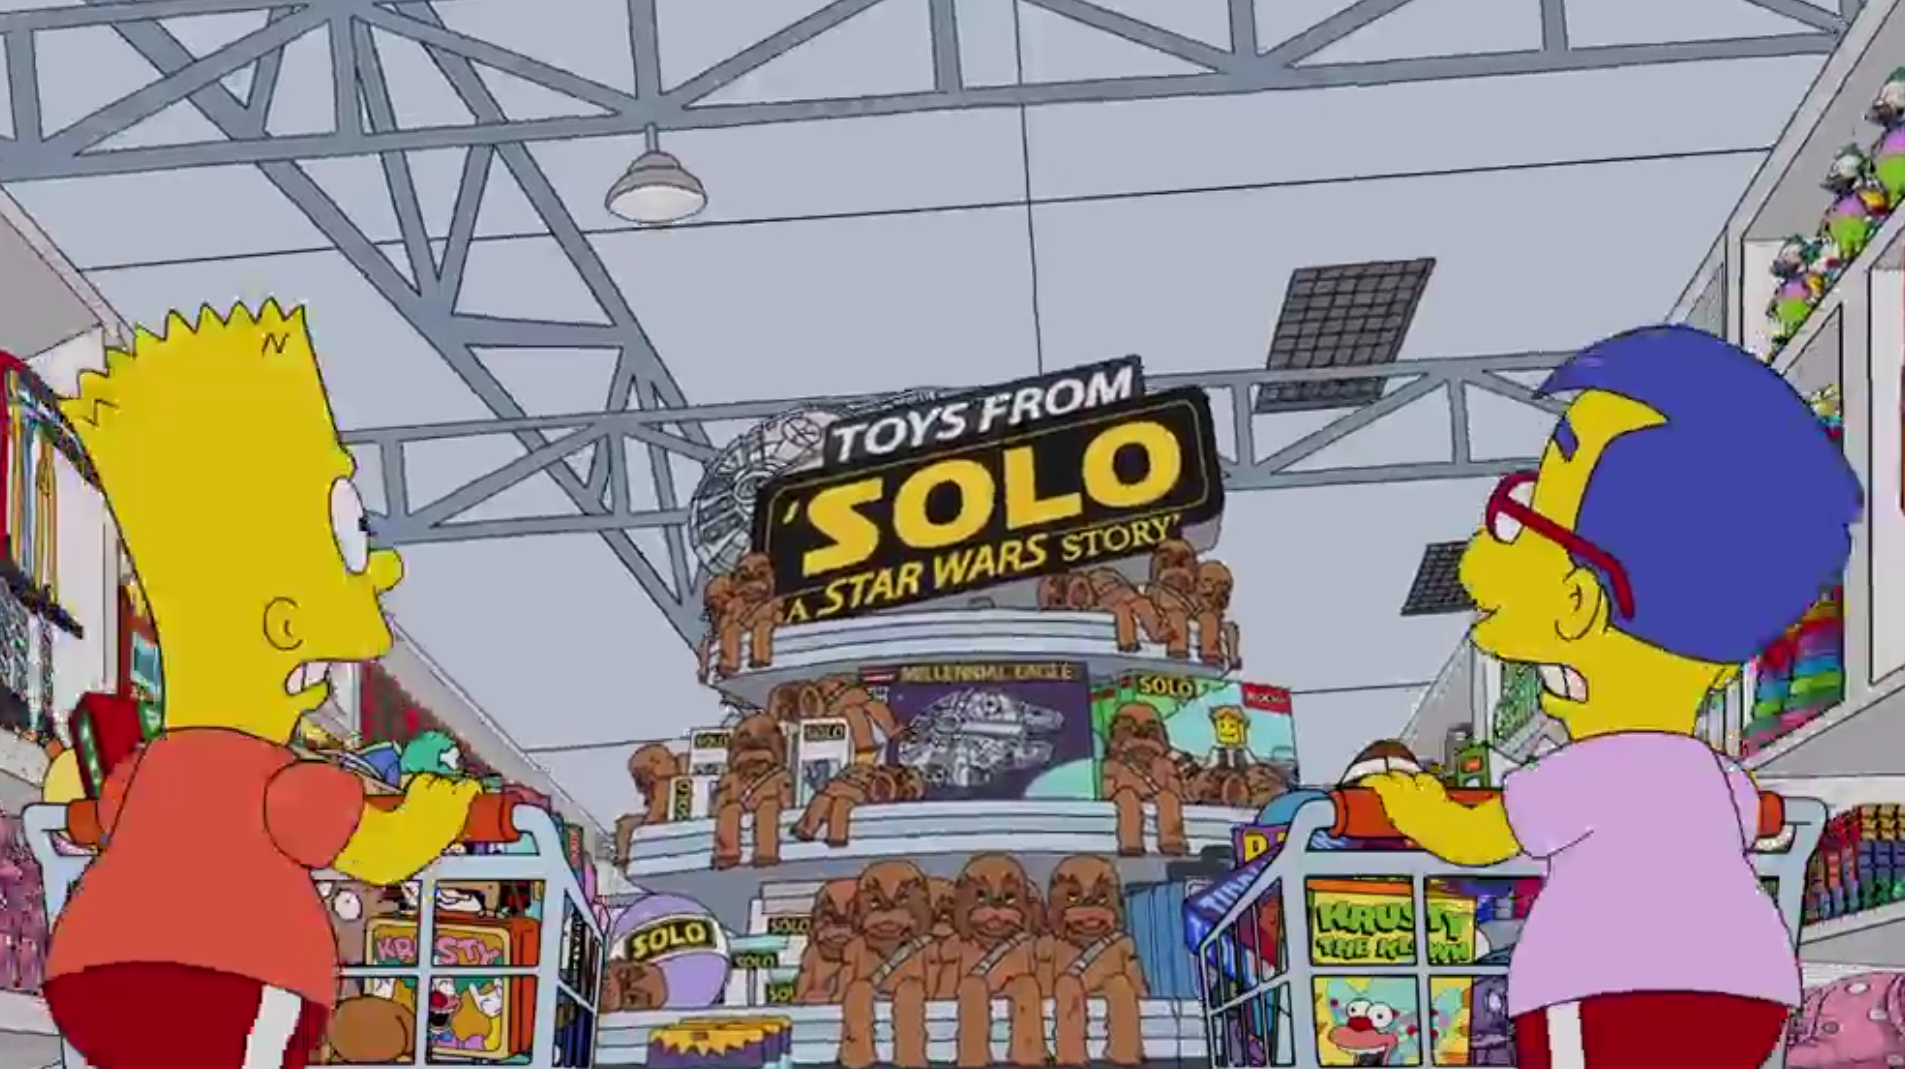 Toys from Solo.png